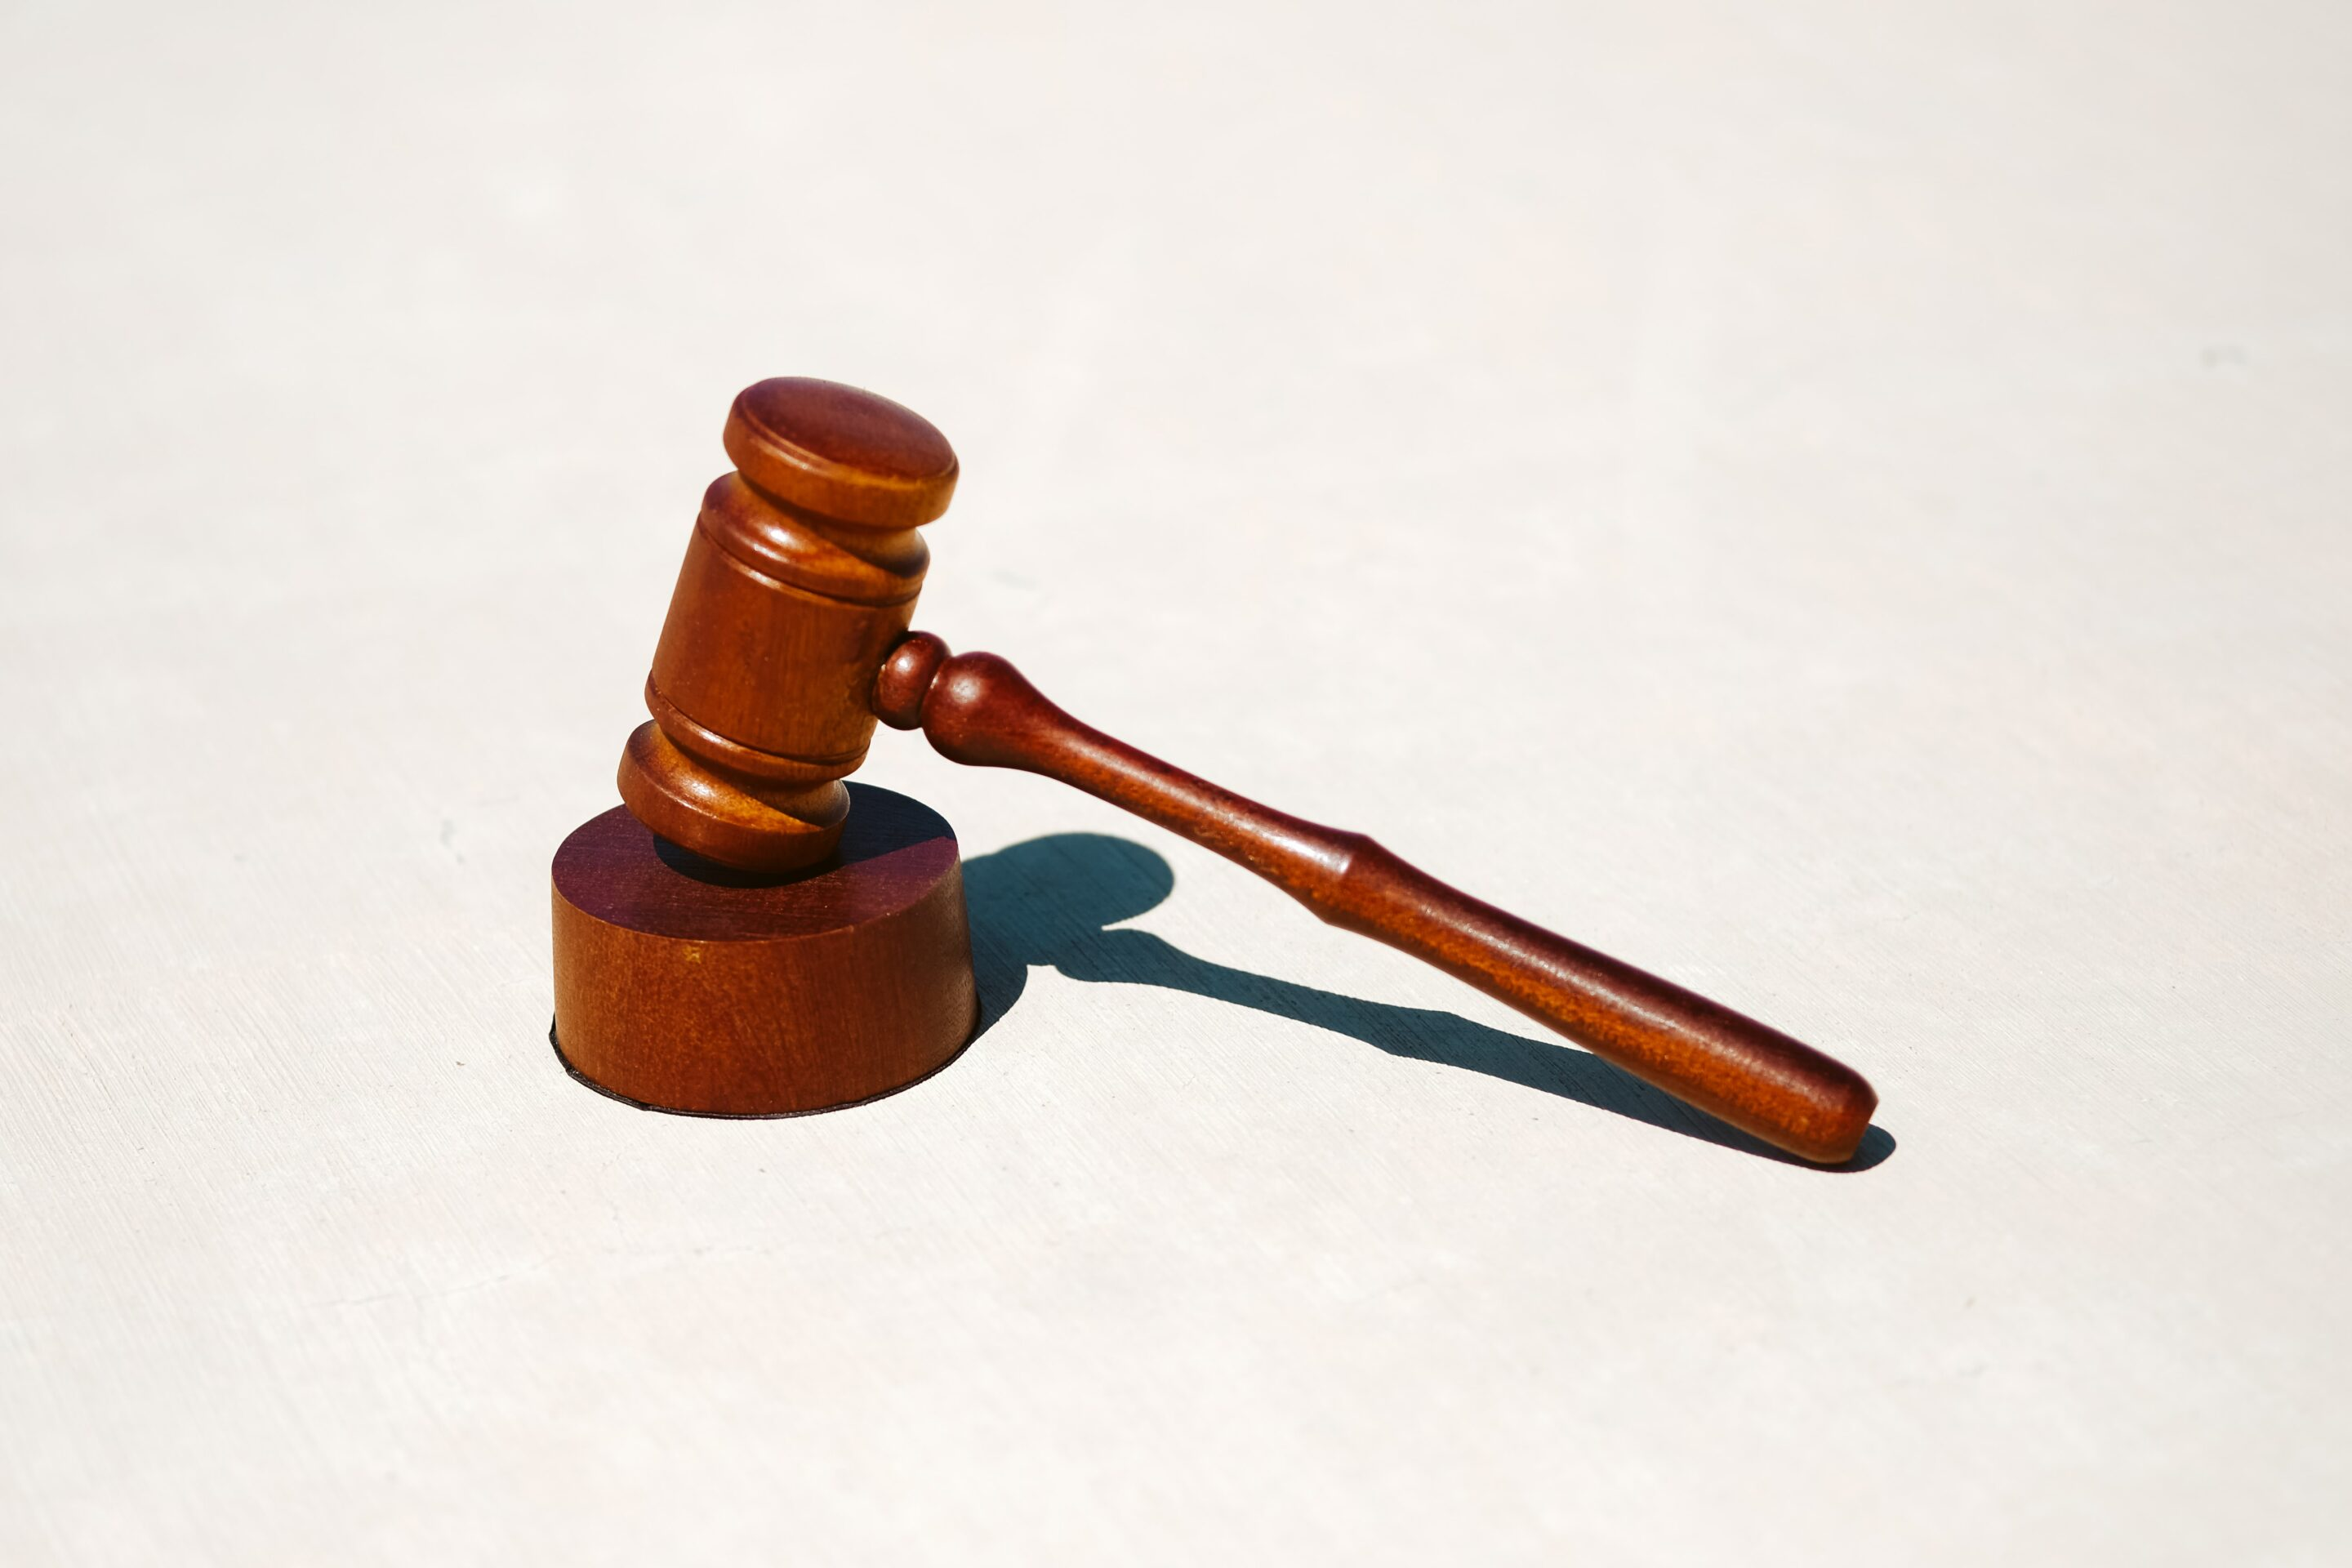 This image shows a wooden hammer that would be used in a court case.